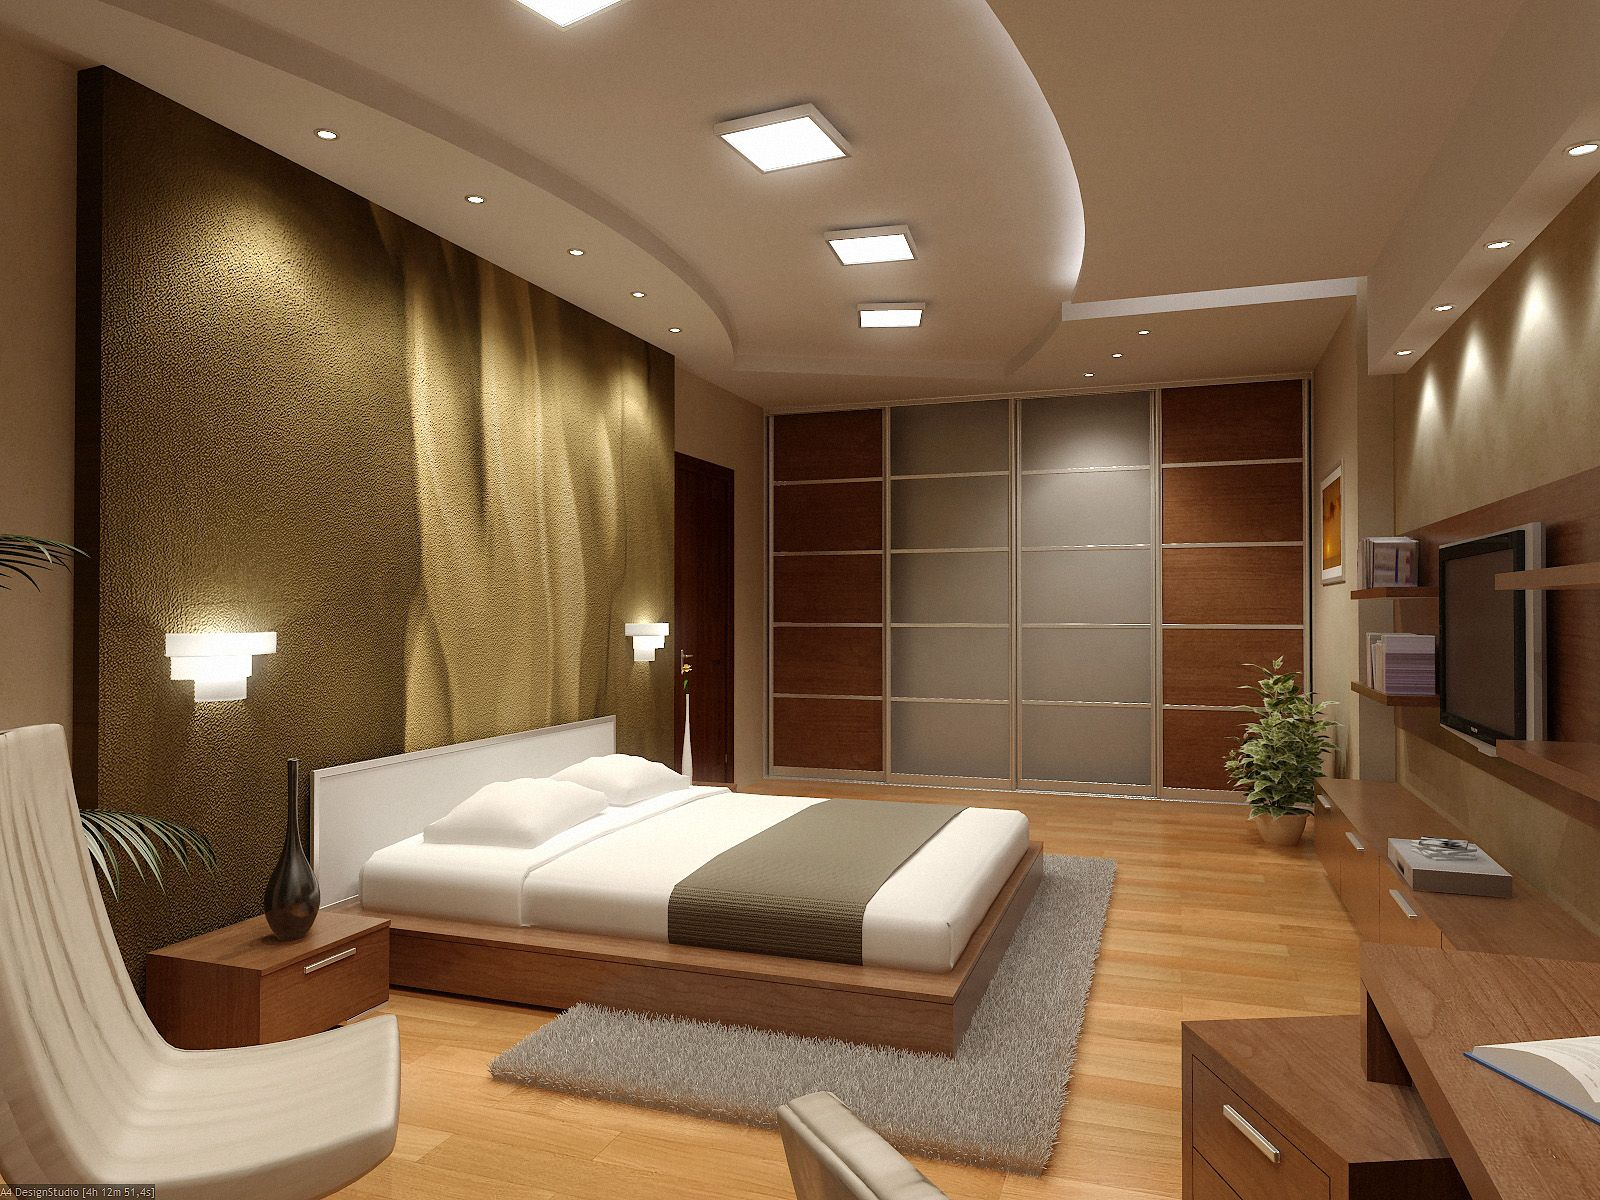 Modern homes luxury interior designing ideas.